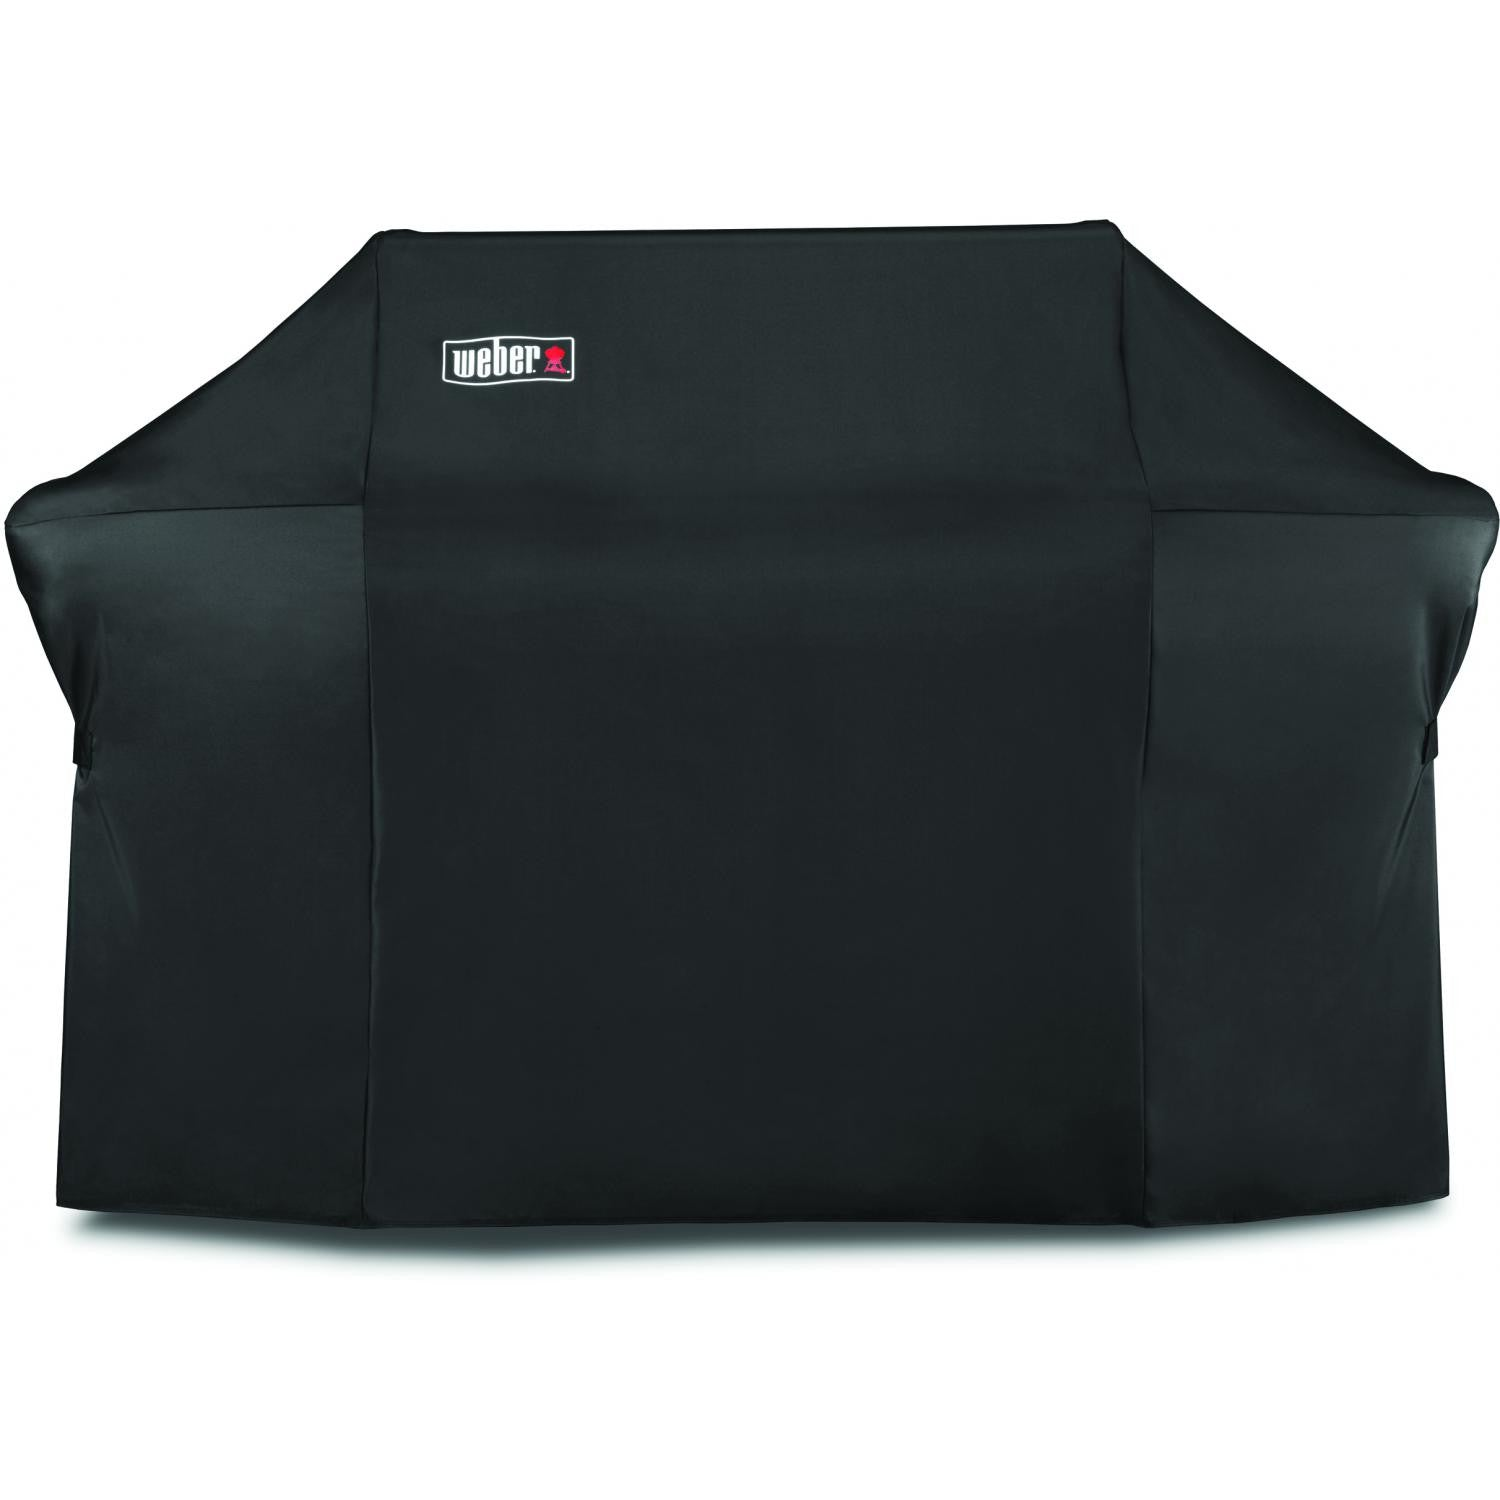 Weber 7109 Premium Grill Cover For Summit E-600 Or S-600 Series Gas Grills